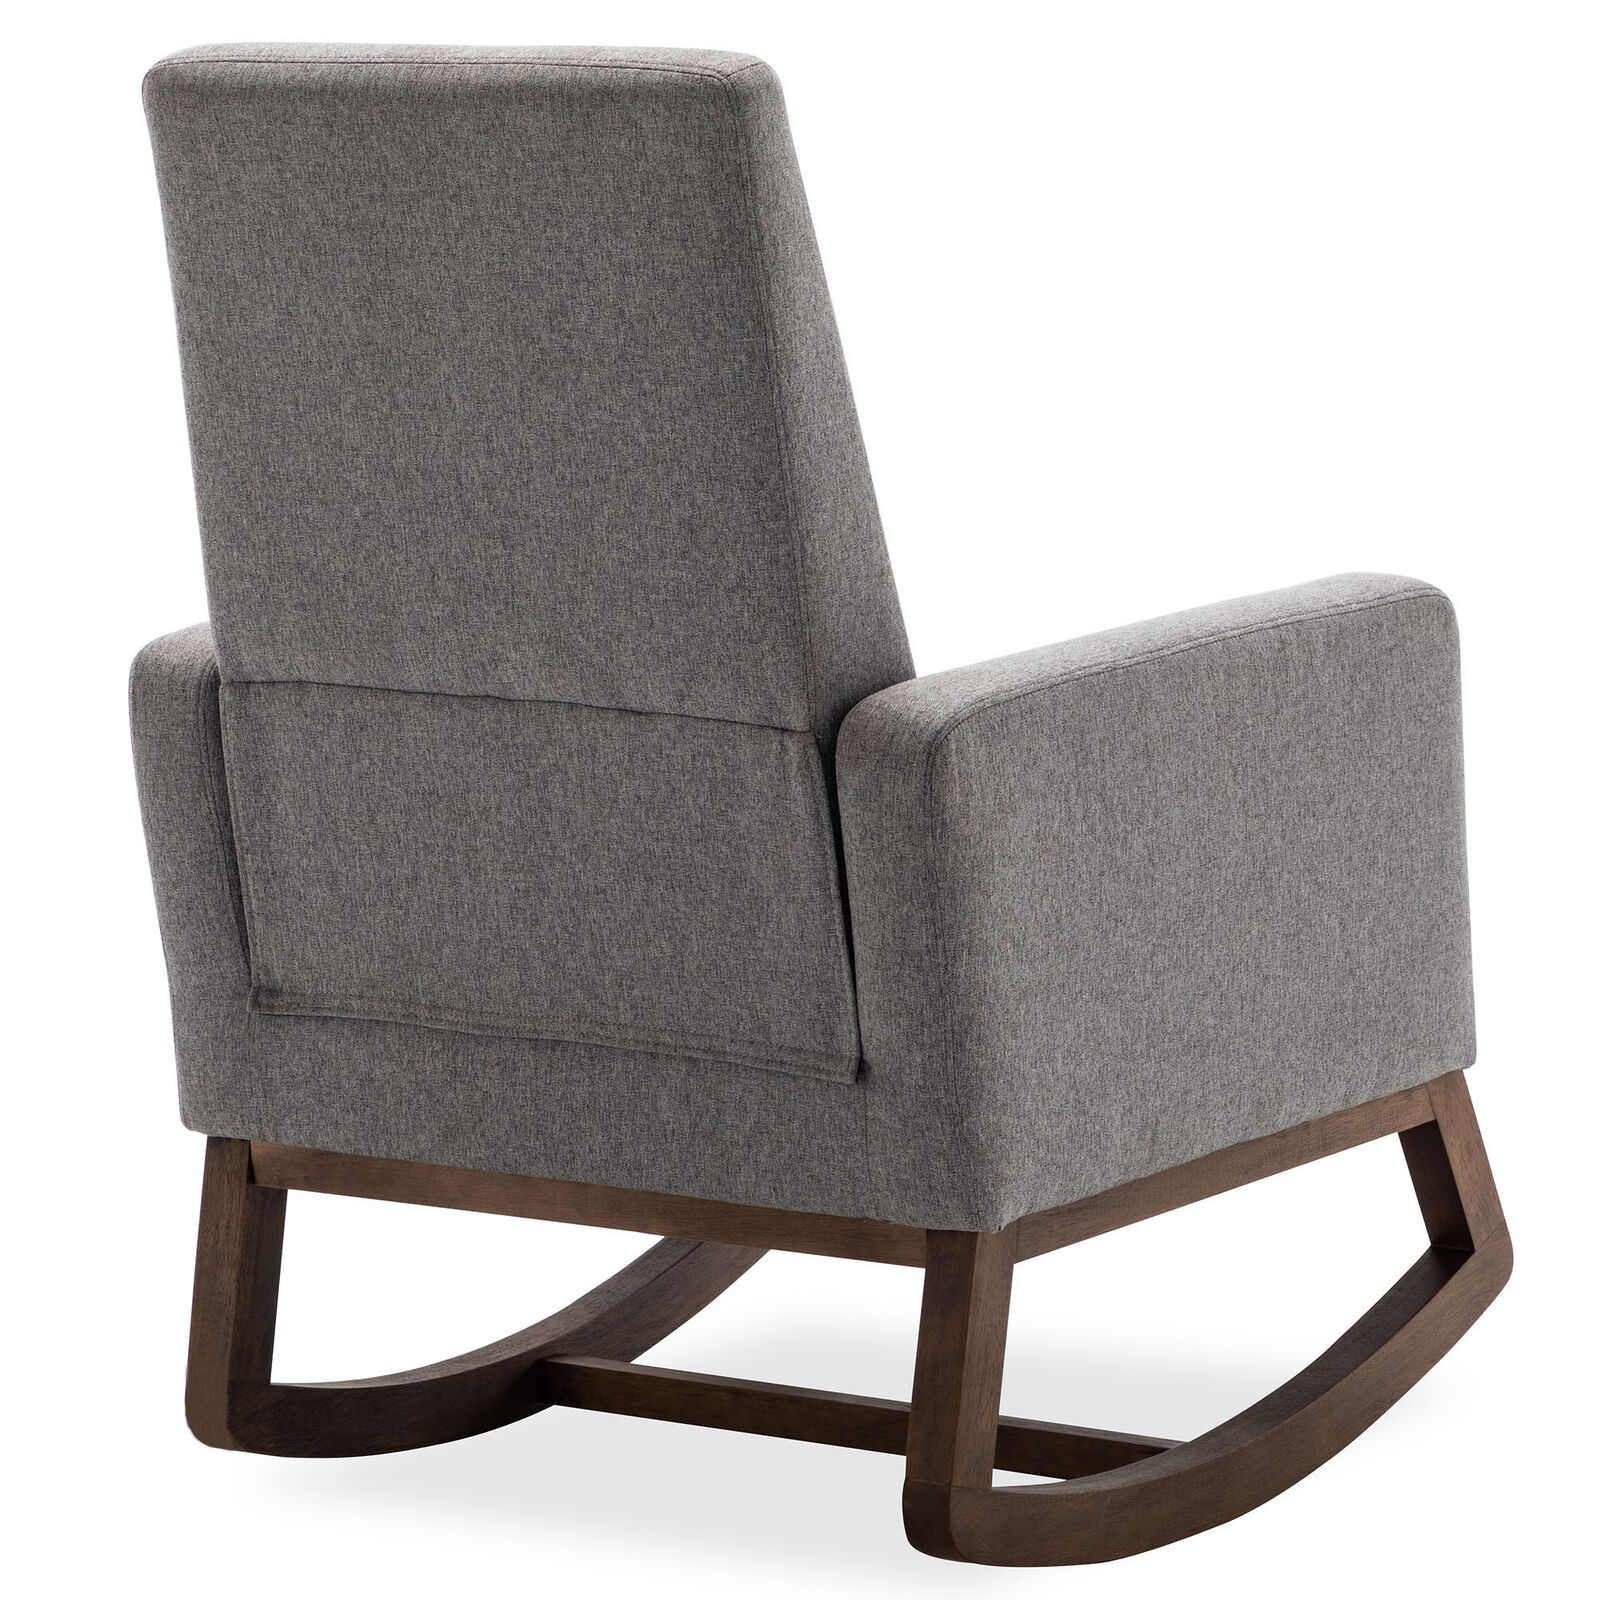 Gray Living Room Rocking Chair Upholstered Fabric High Back Armchair Padded Seat